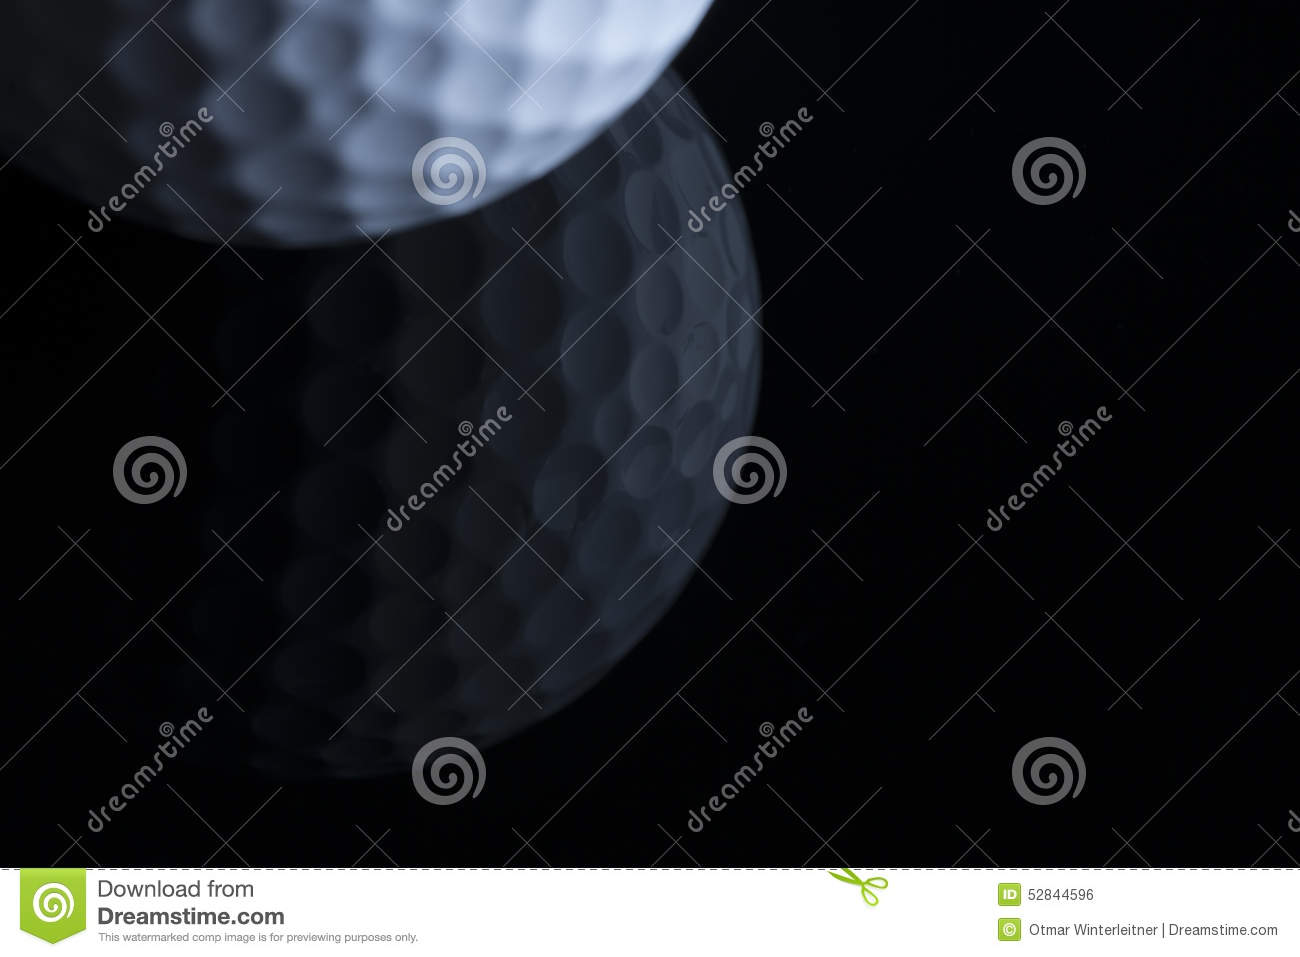 Golf ball with reflection isolated on black background.